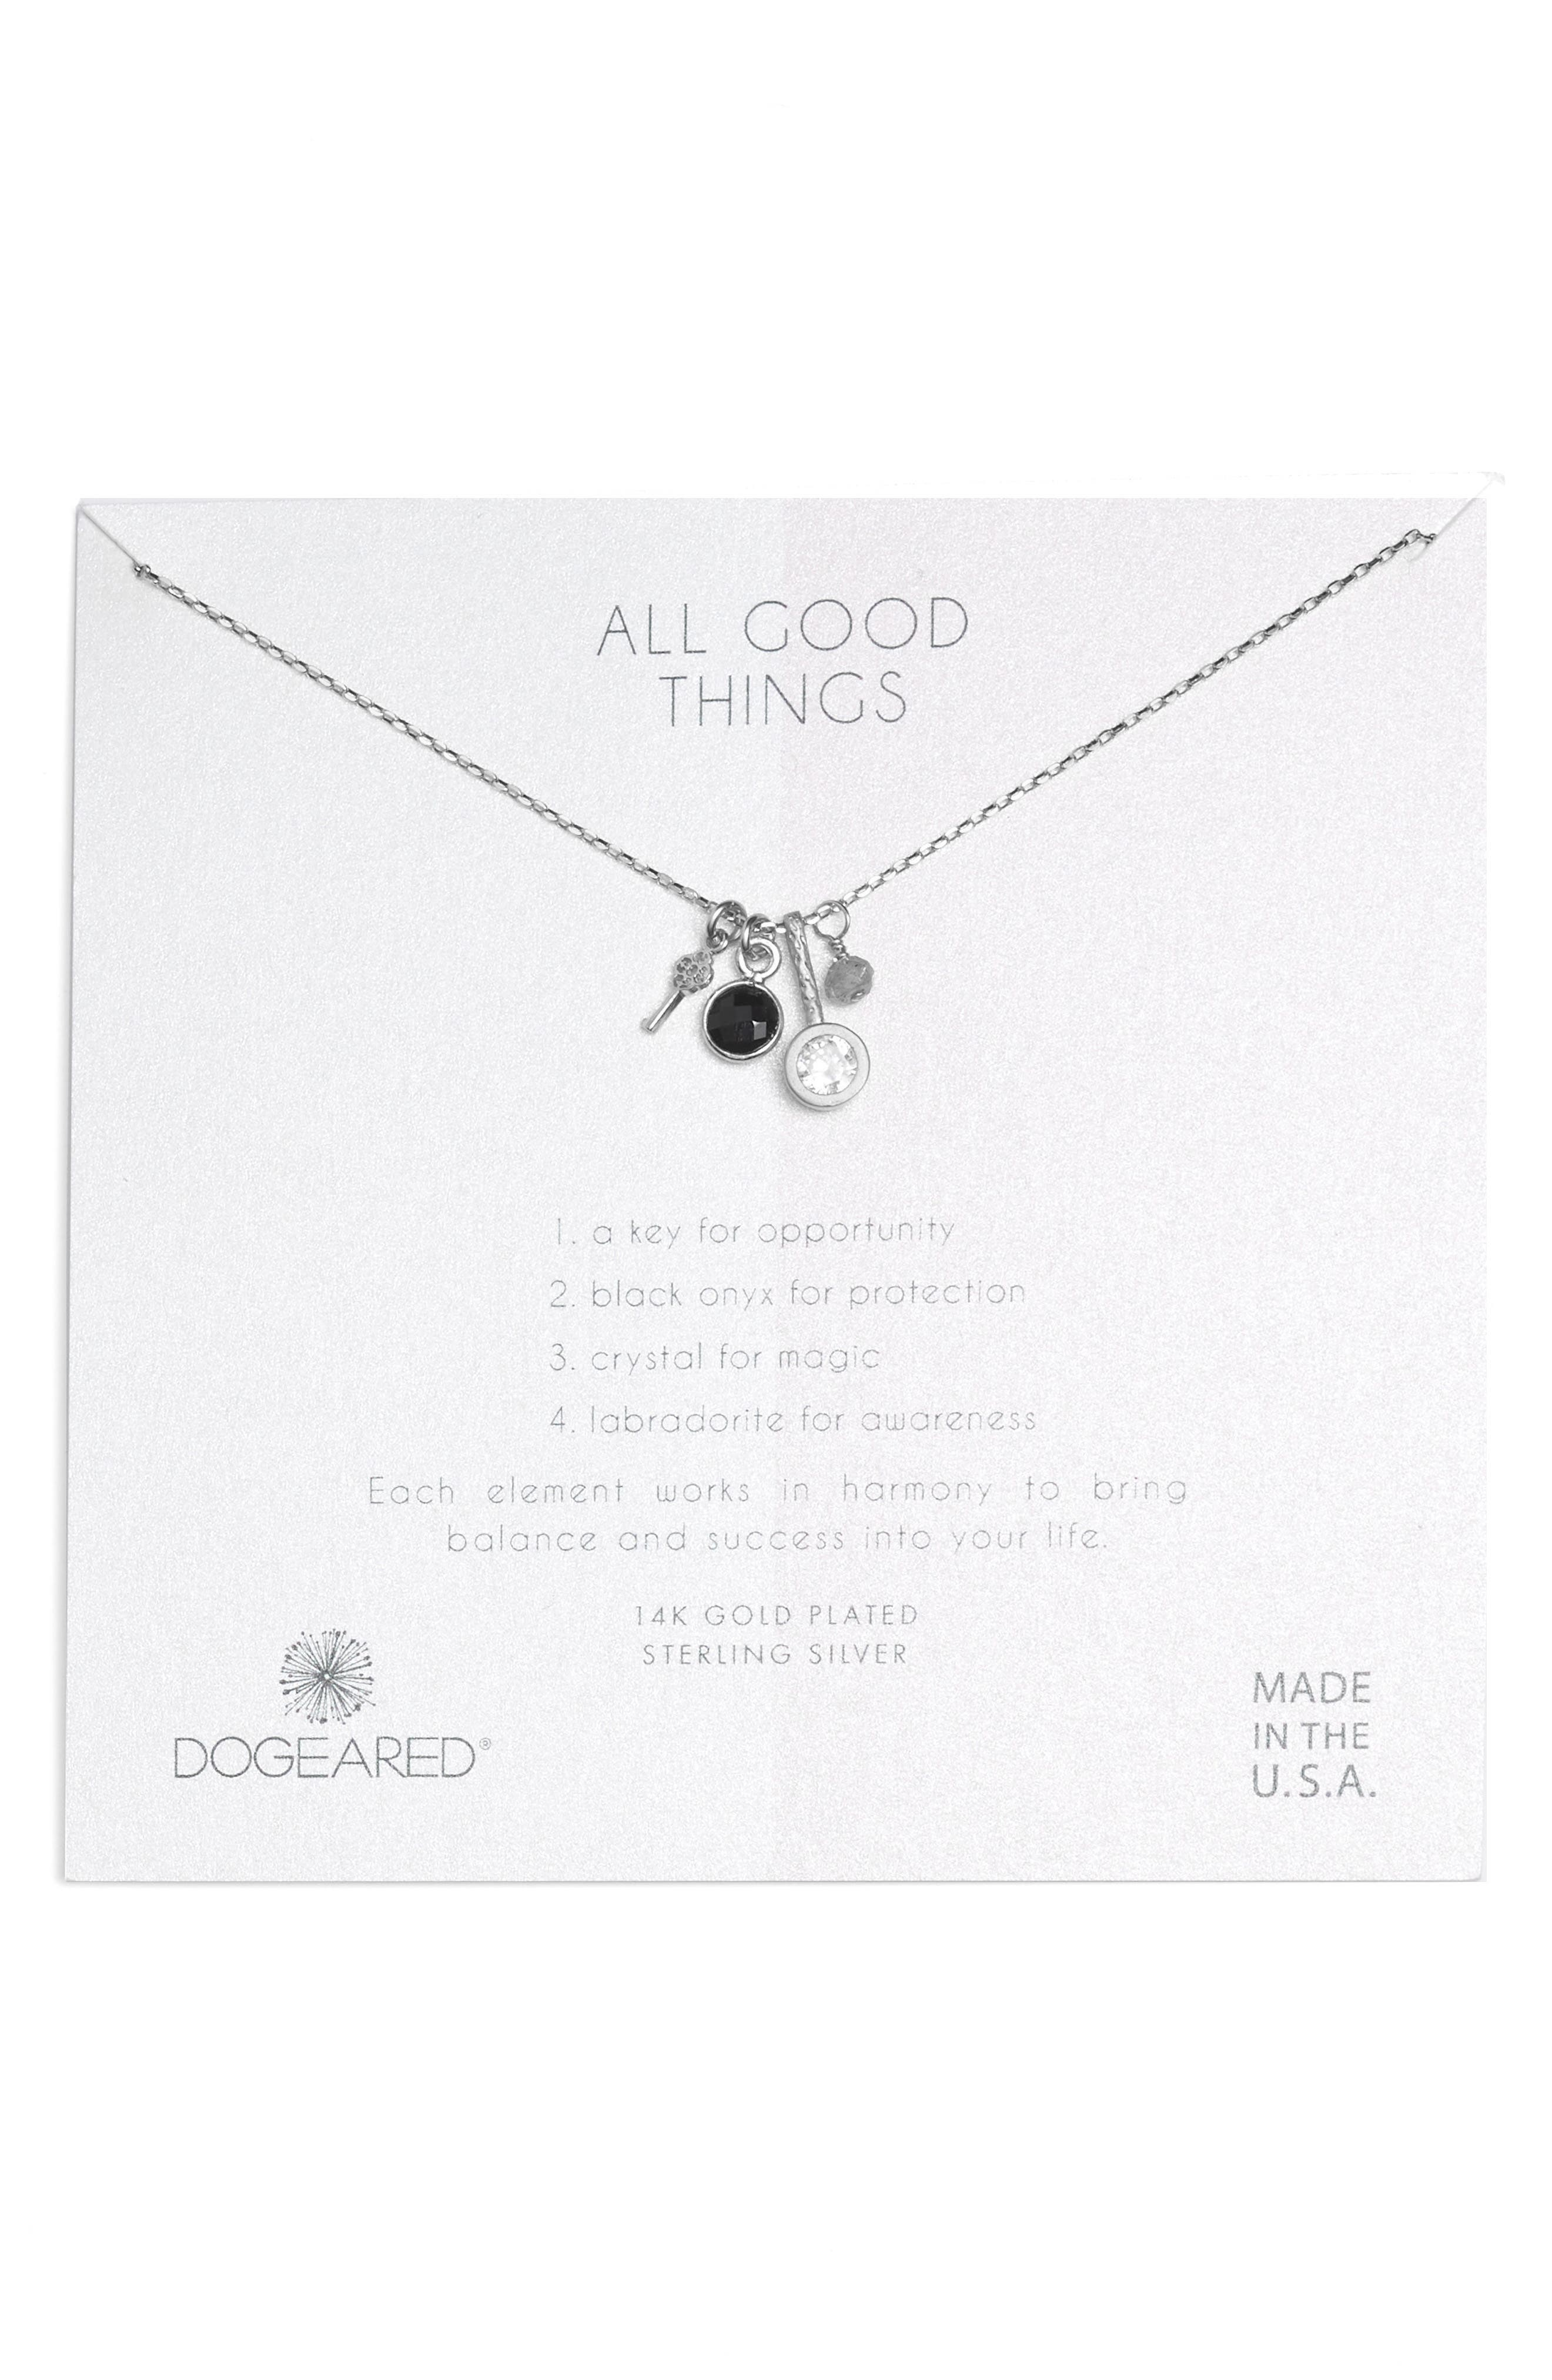 All Good Things Onyx Necklace,                         Main,                         color, Silver